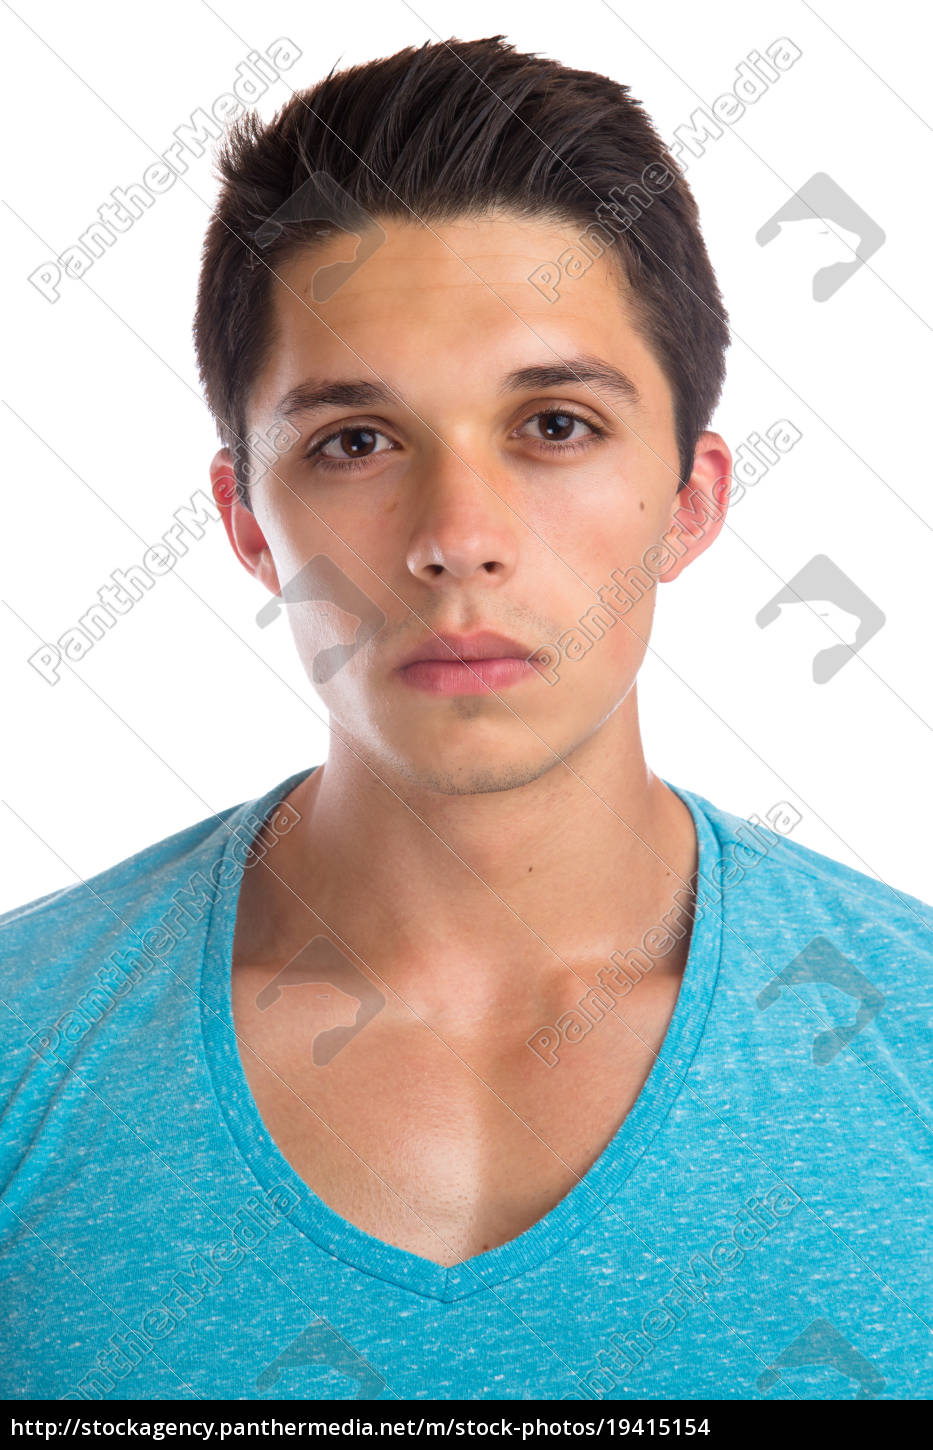 young, man, portrait, young, face, muscles - 19415154